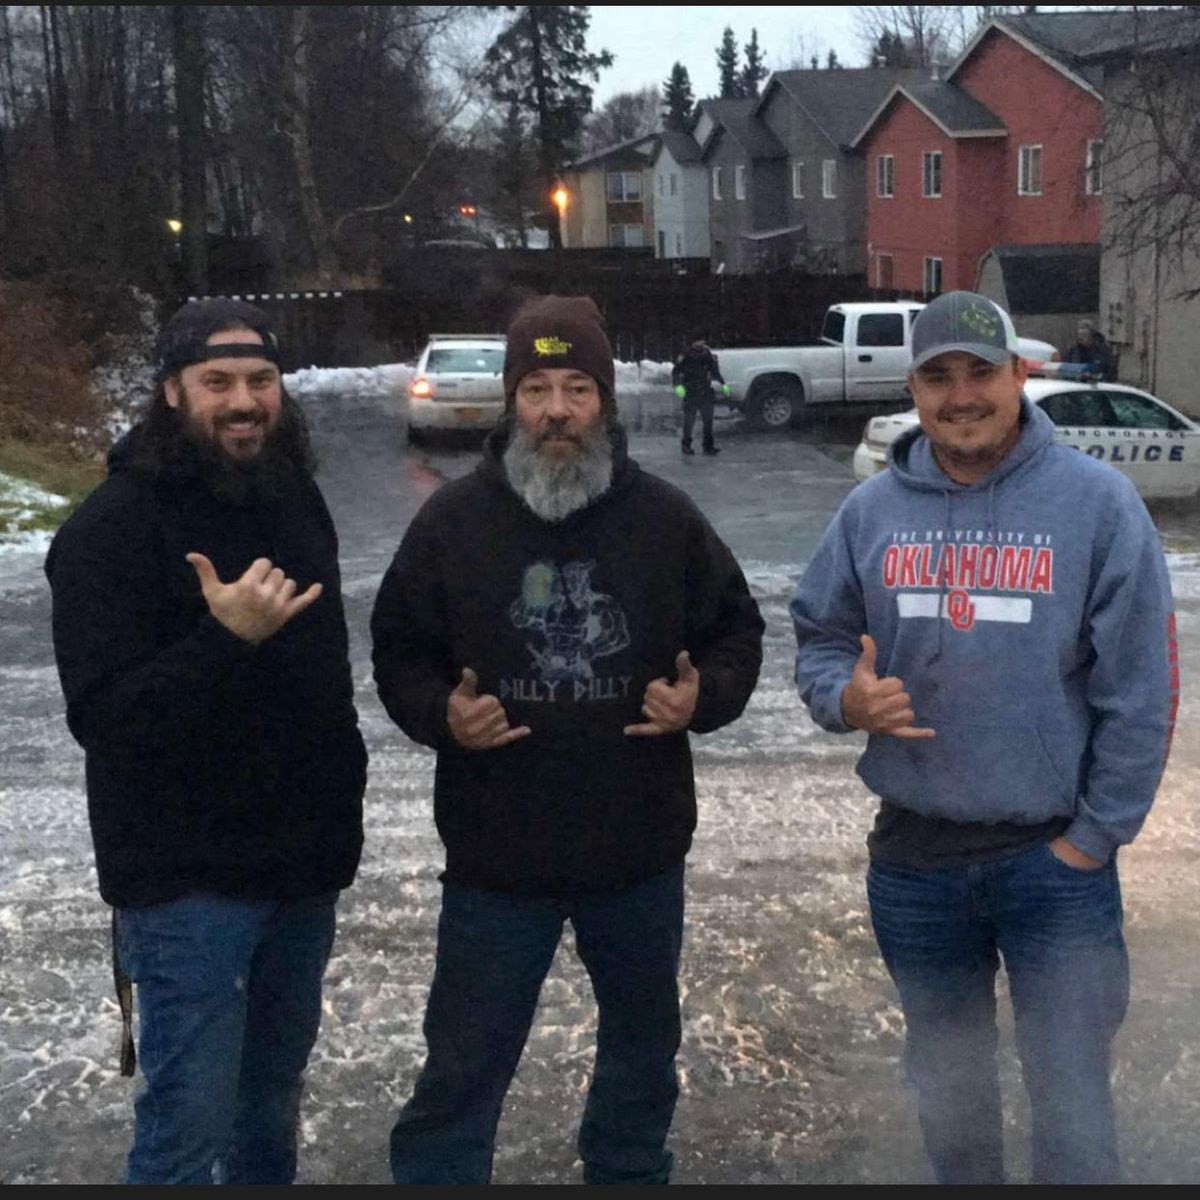 Clint Greathouse of Anchorage (left) celebrates the recovery of his stolen truck with Alaska A-Team members Floyd Hall and Chad Martin on Sunday, Nov. 18, 2018. (Photo by Patty Greathouse)